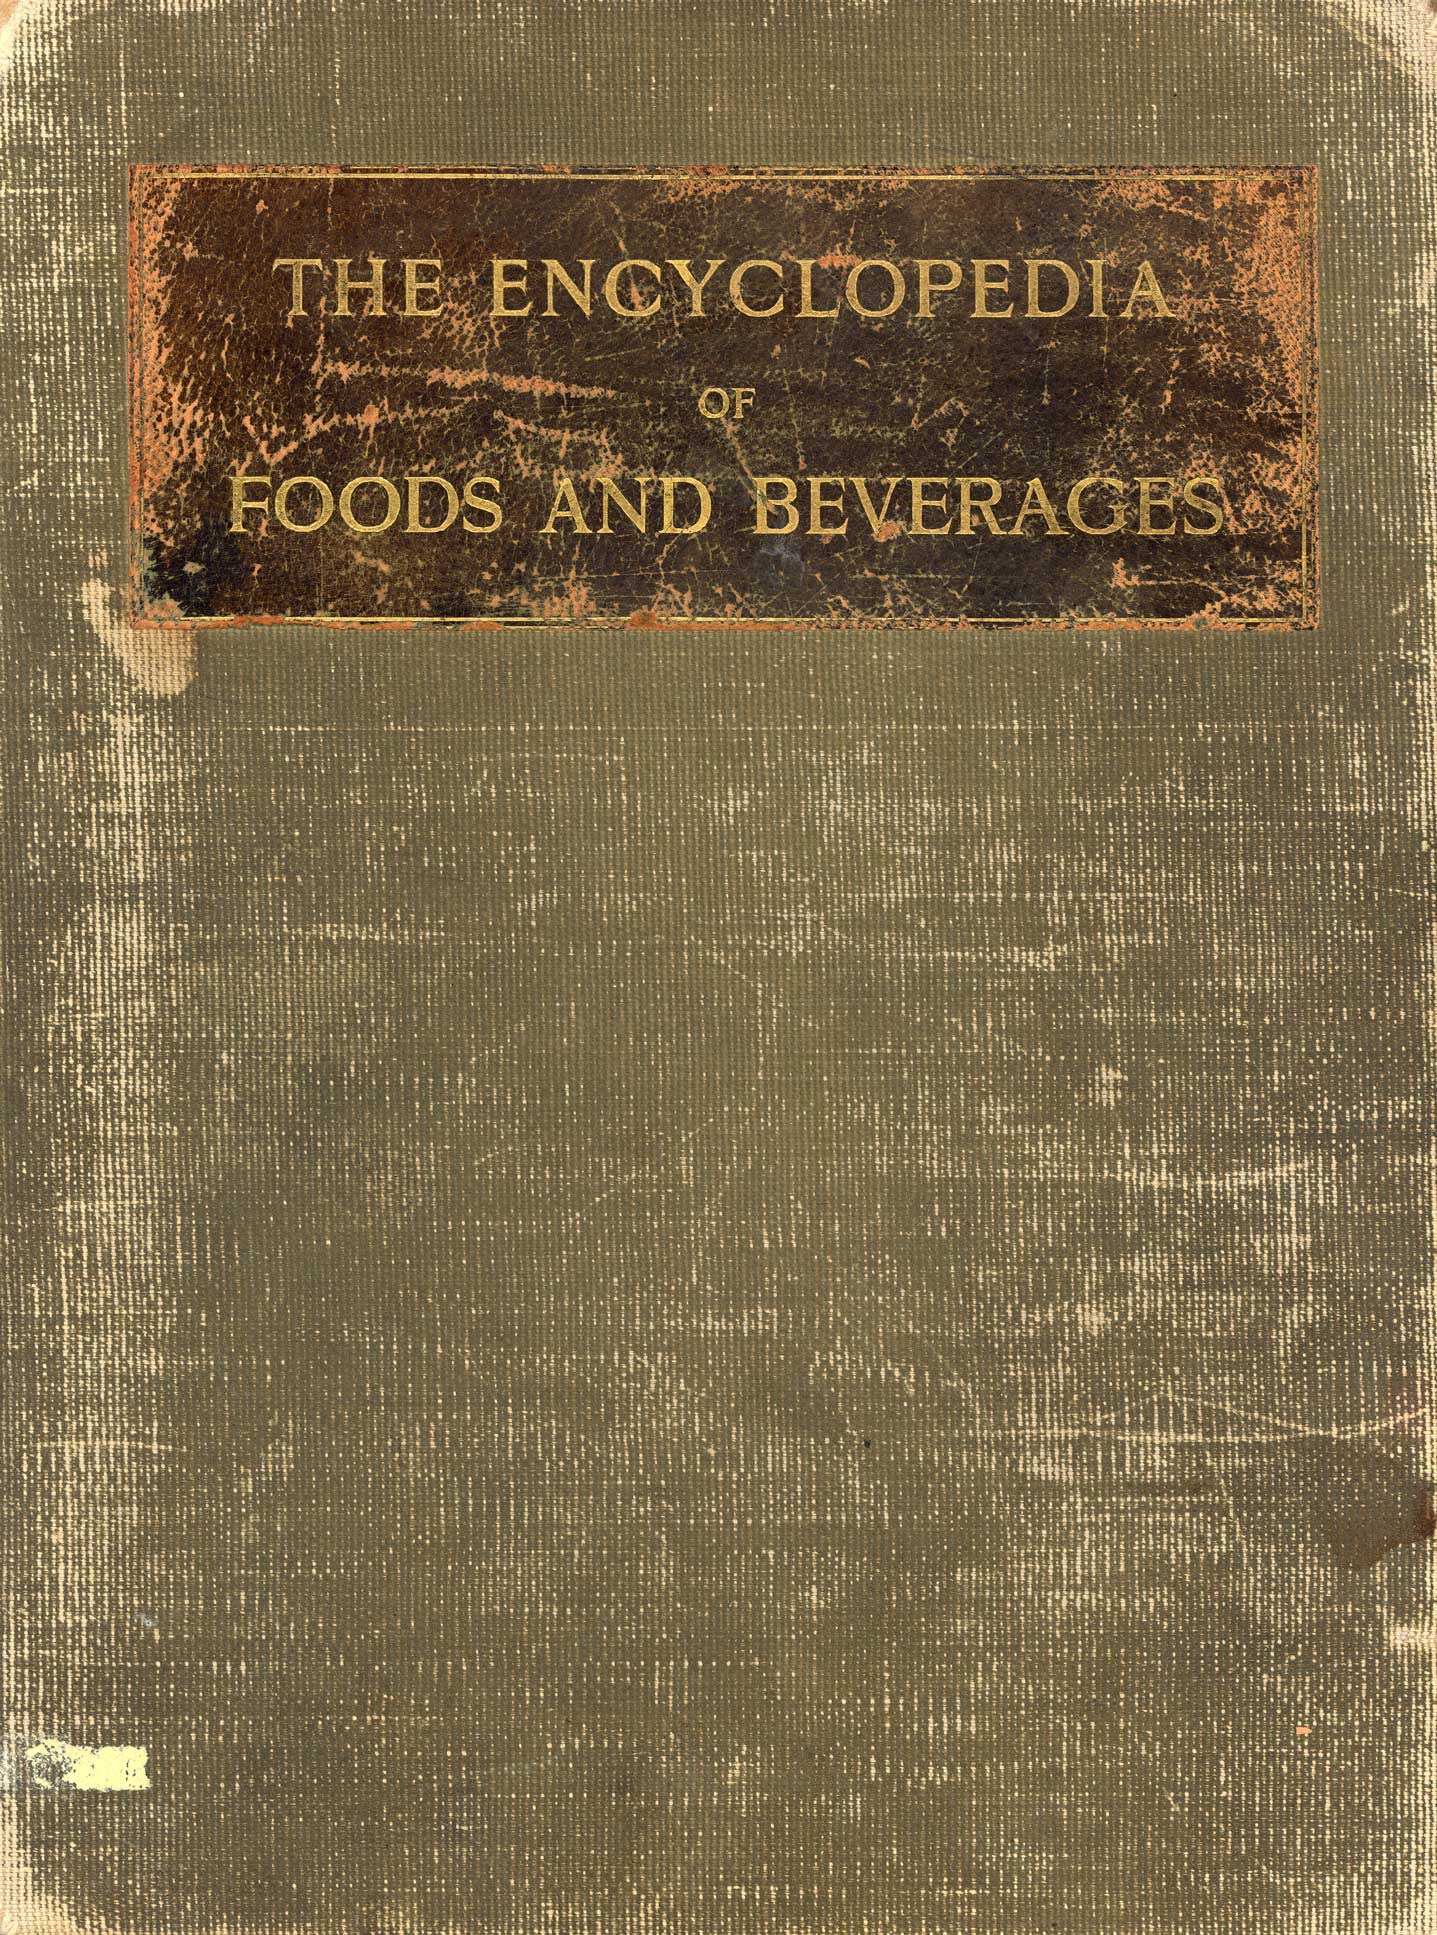 The grocer's encyclopedia